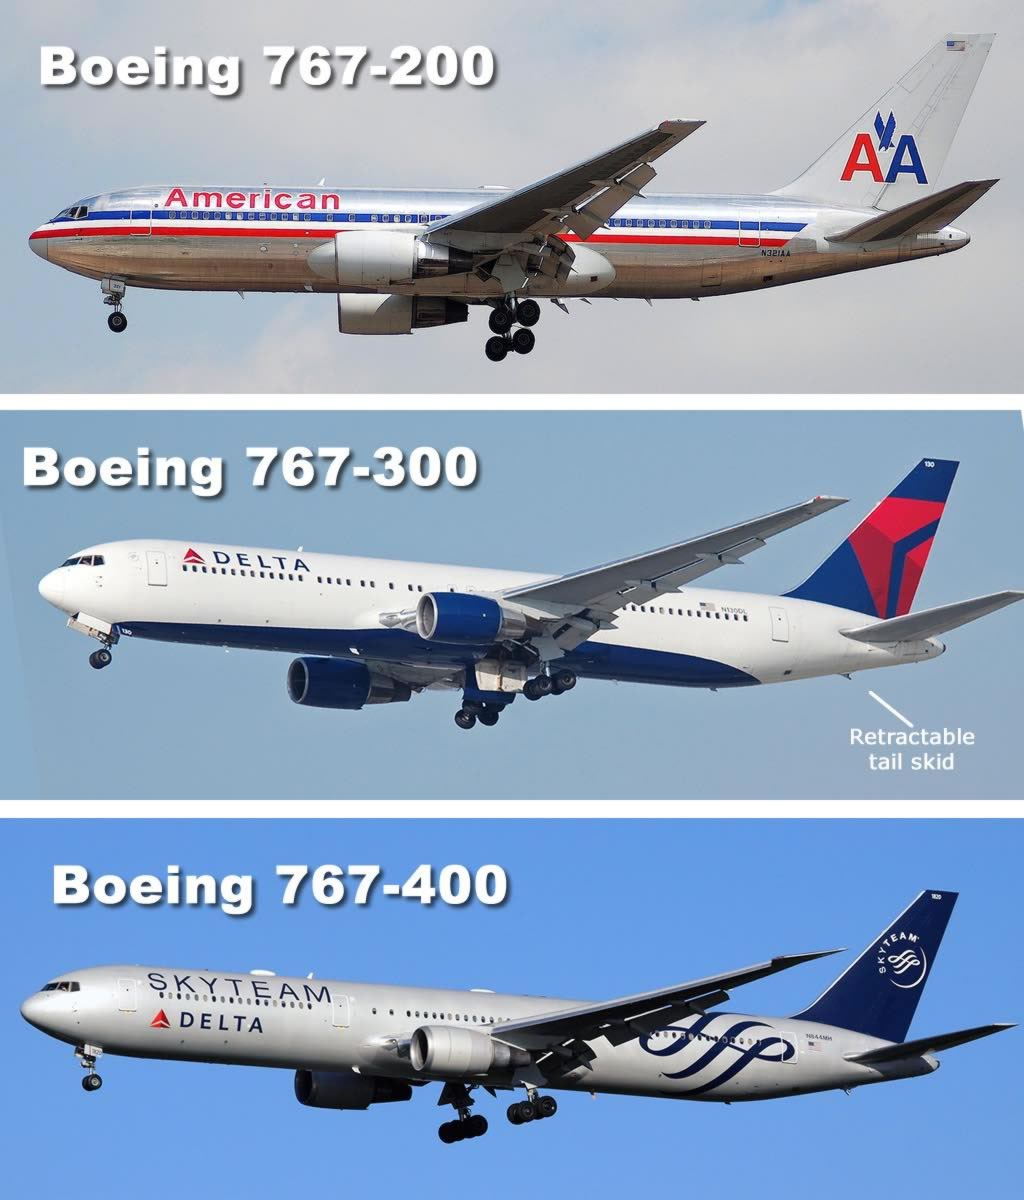 Spotter tips for the Boeing 767-200 (top) and 767-300 (bottom). The main landing gear fall towards the front.